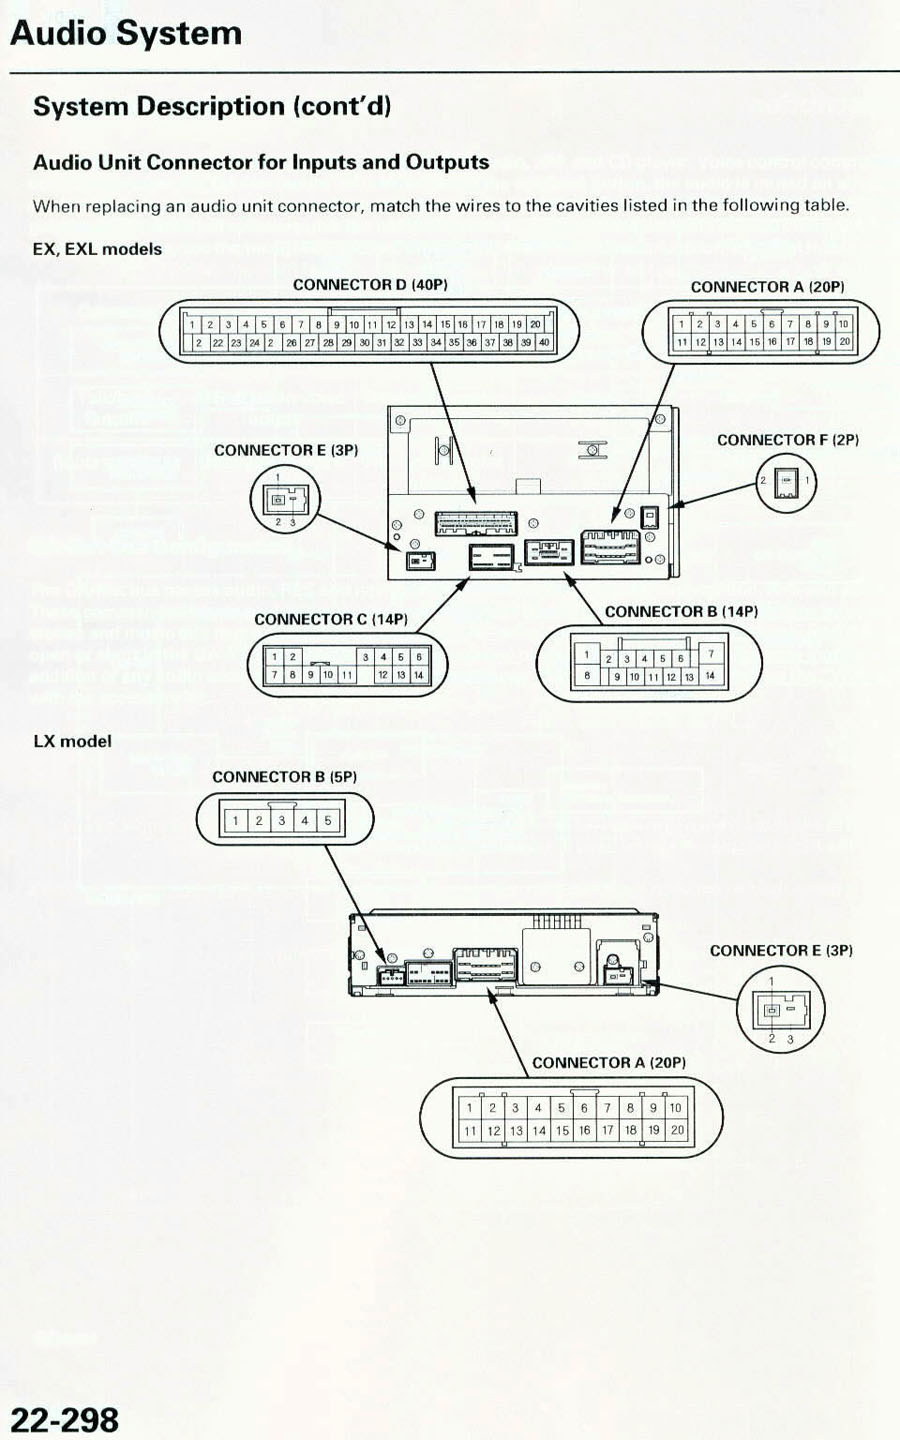 Honda Crv Radio Wiring Diagram Will Be A Thing 2000 Mitsubishi Eclipse Harness File Type Audio Connector 2006 182 0 Kb 22742